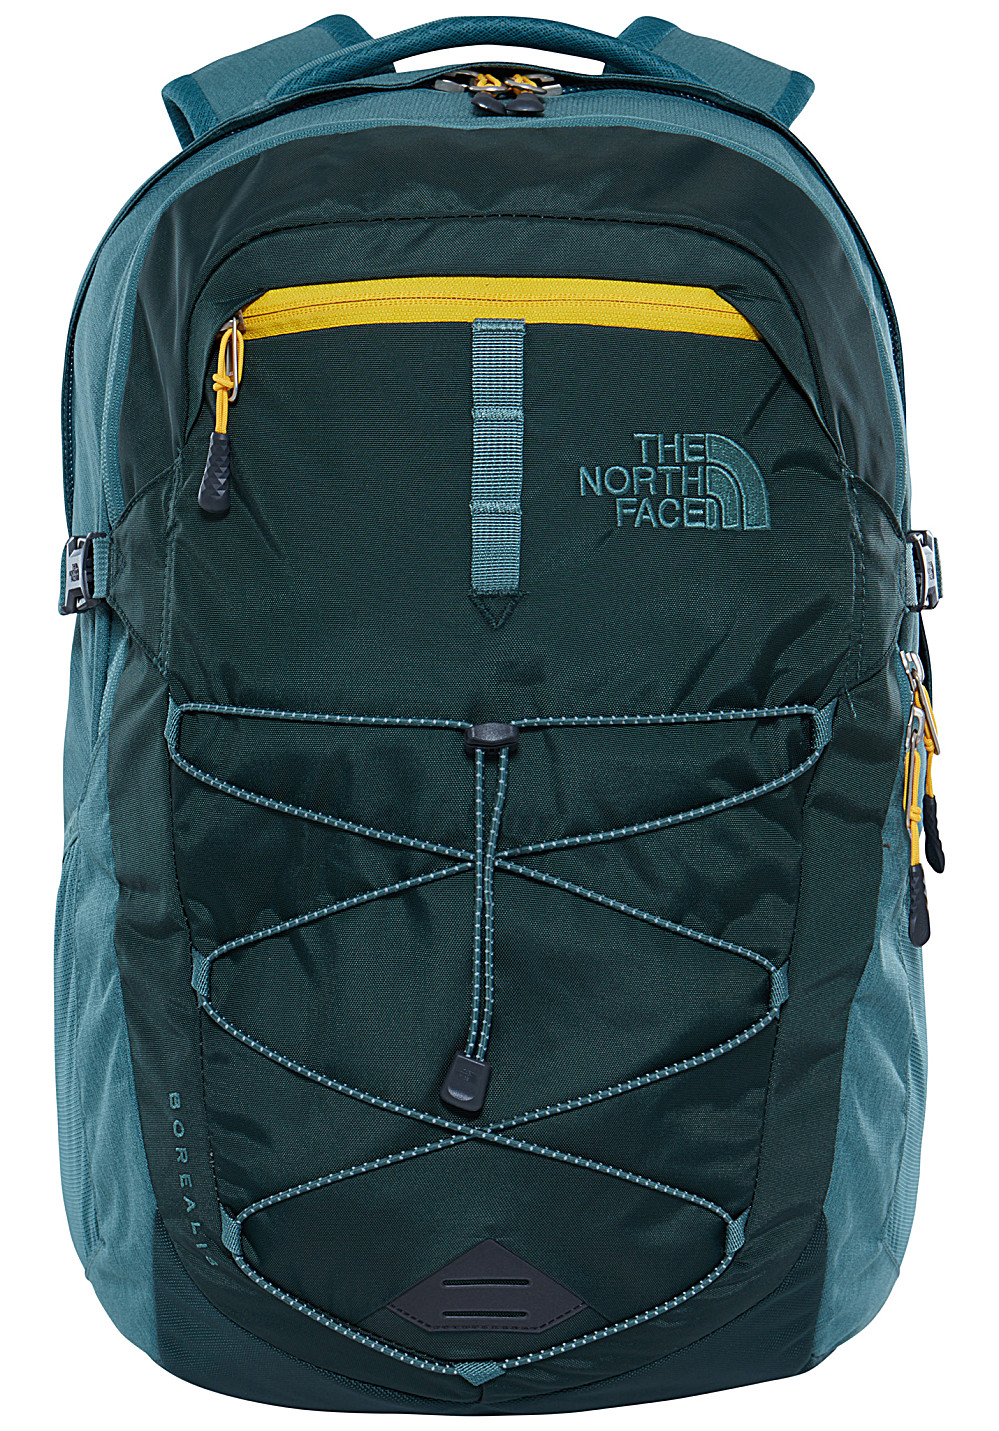 The North Face Borealis Rucksack - Grün